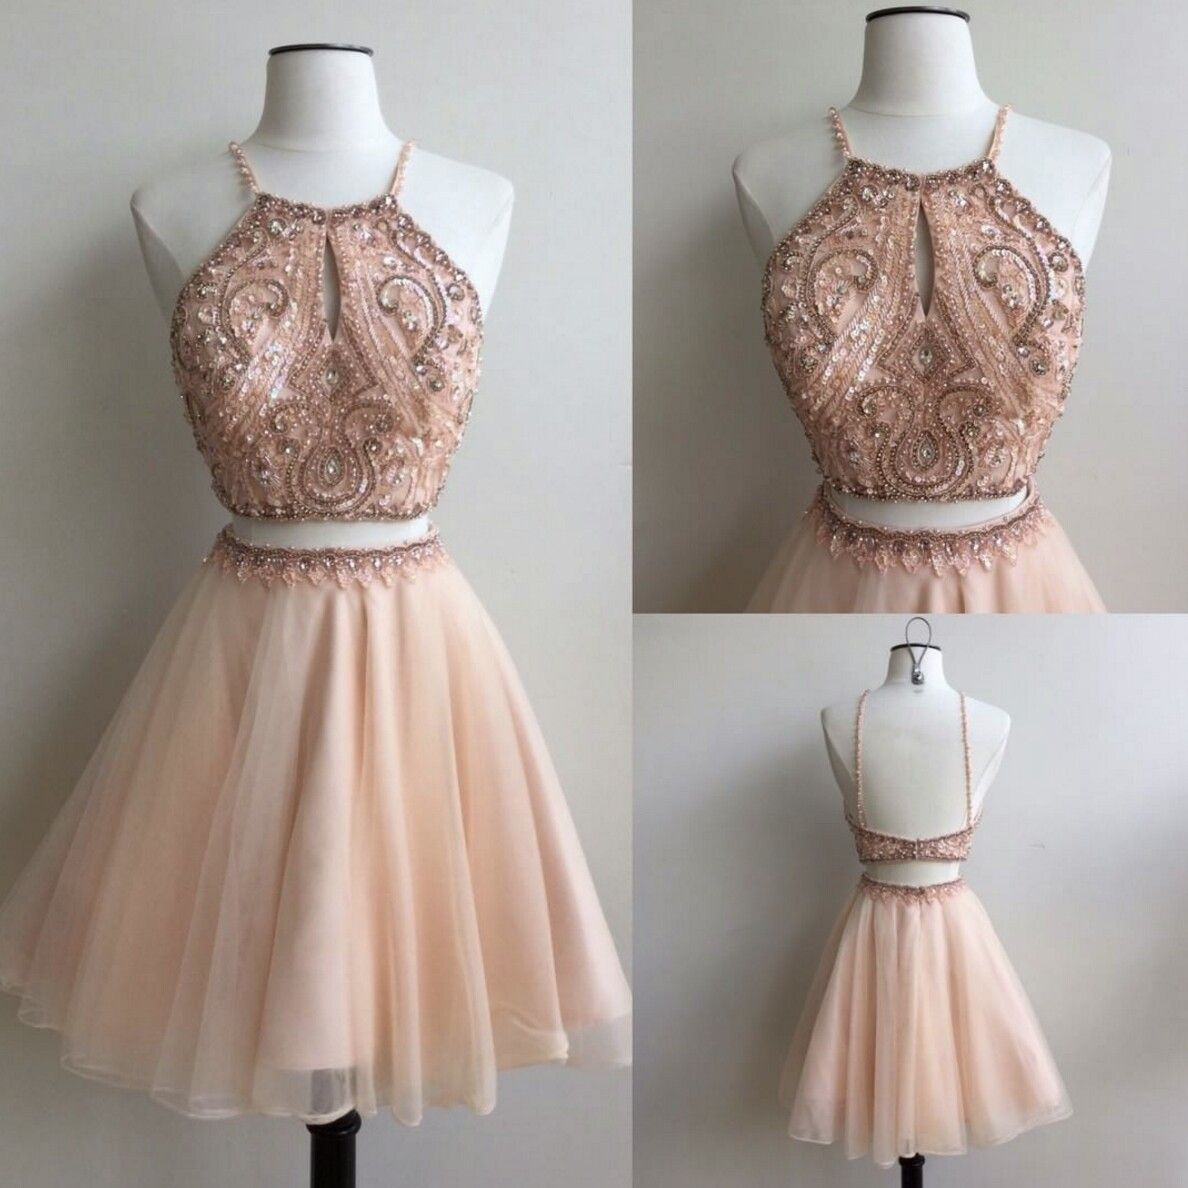 Pin by ava on dresses in pinterest dresses homecoming